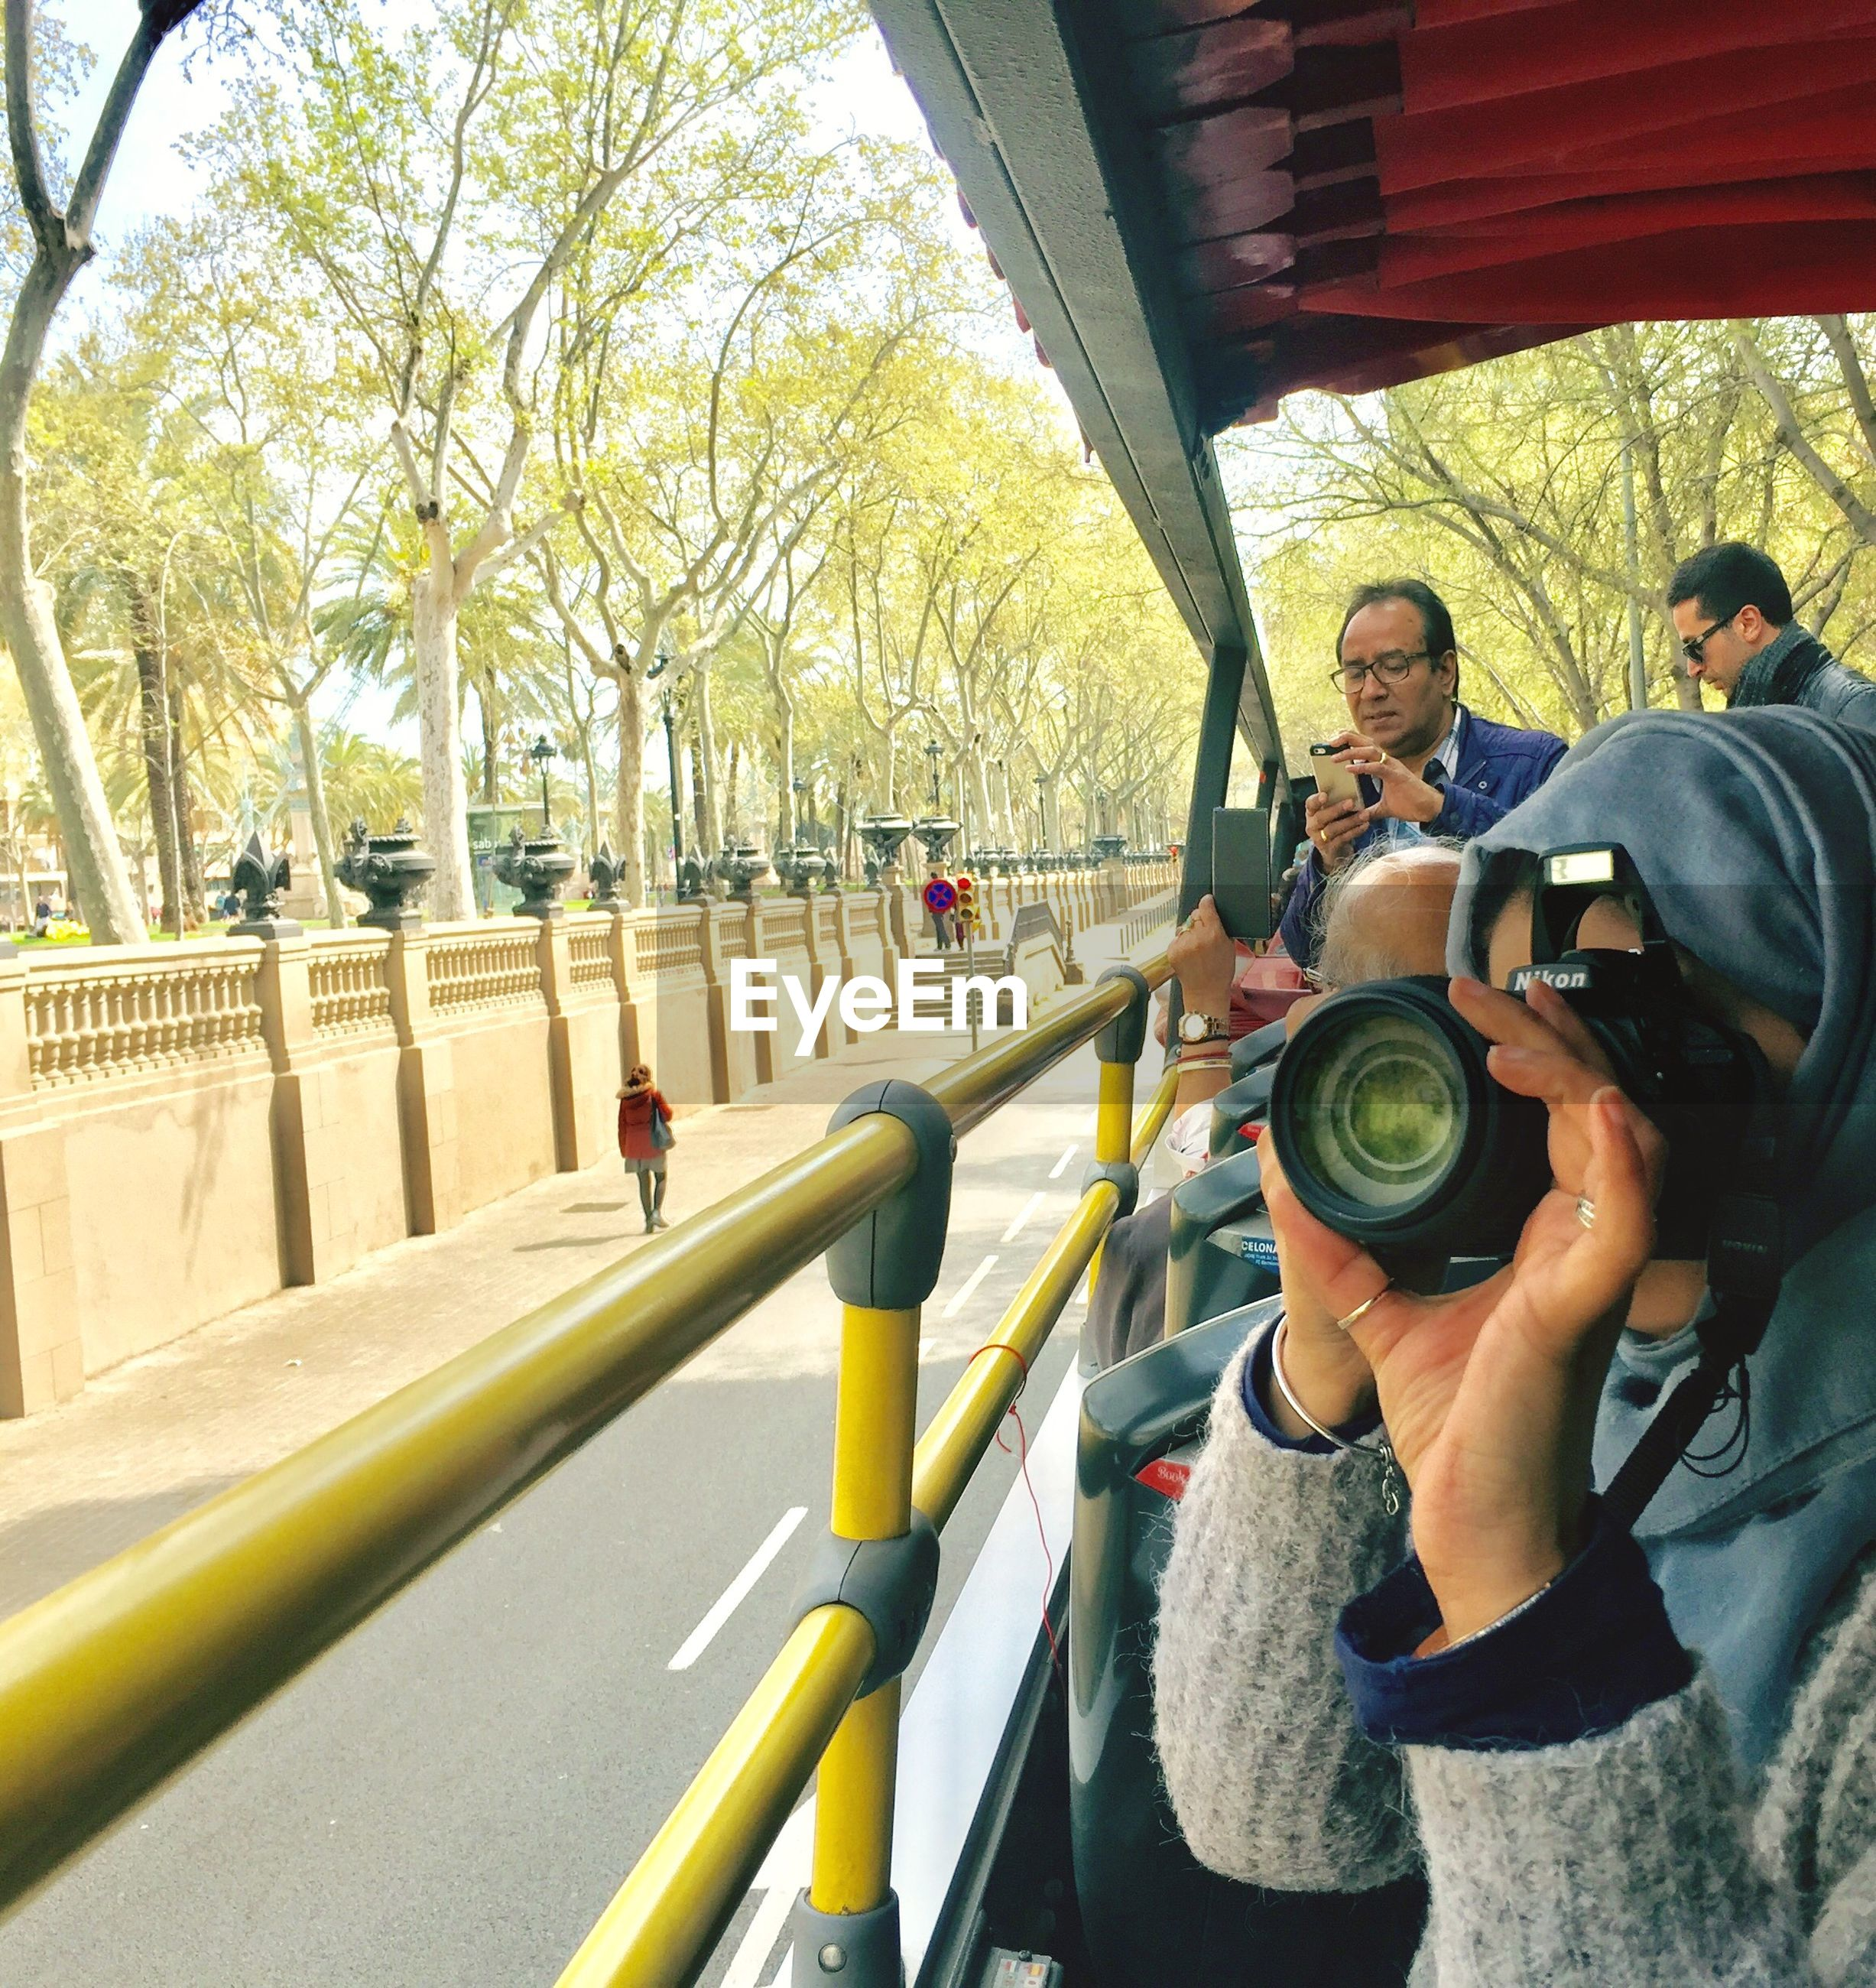 PORTRAIT OF PEOPLE PHOTOGRAPHING ON BUS